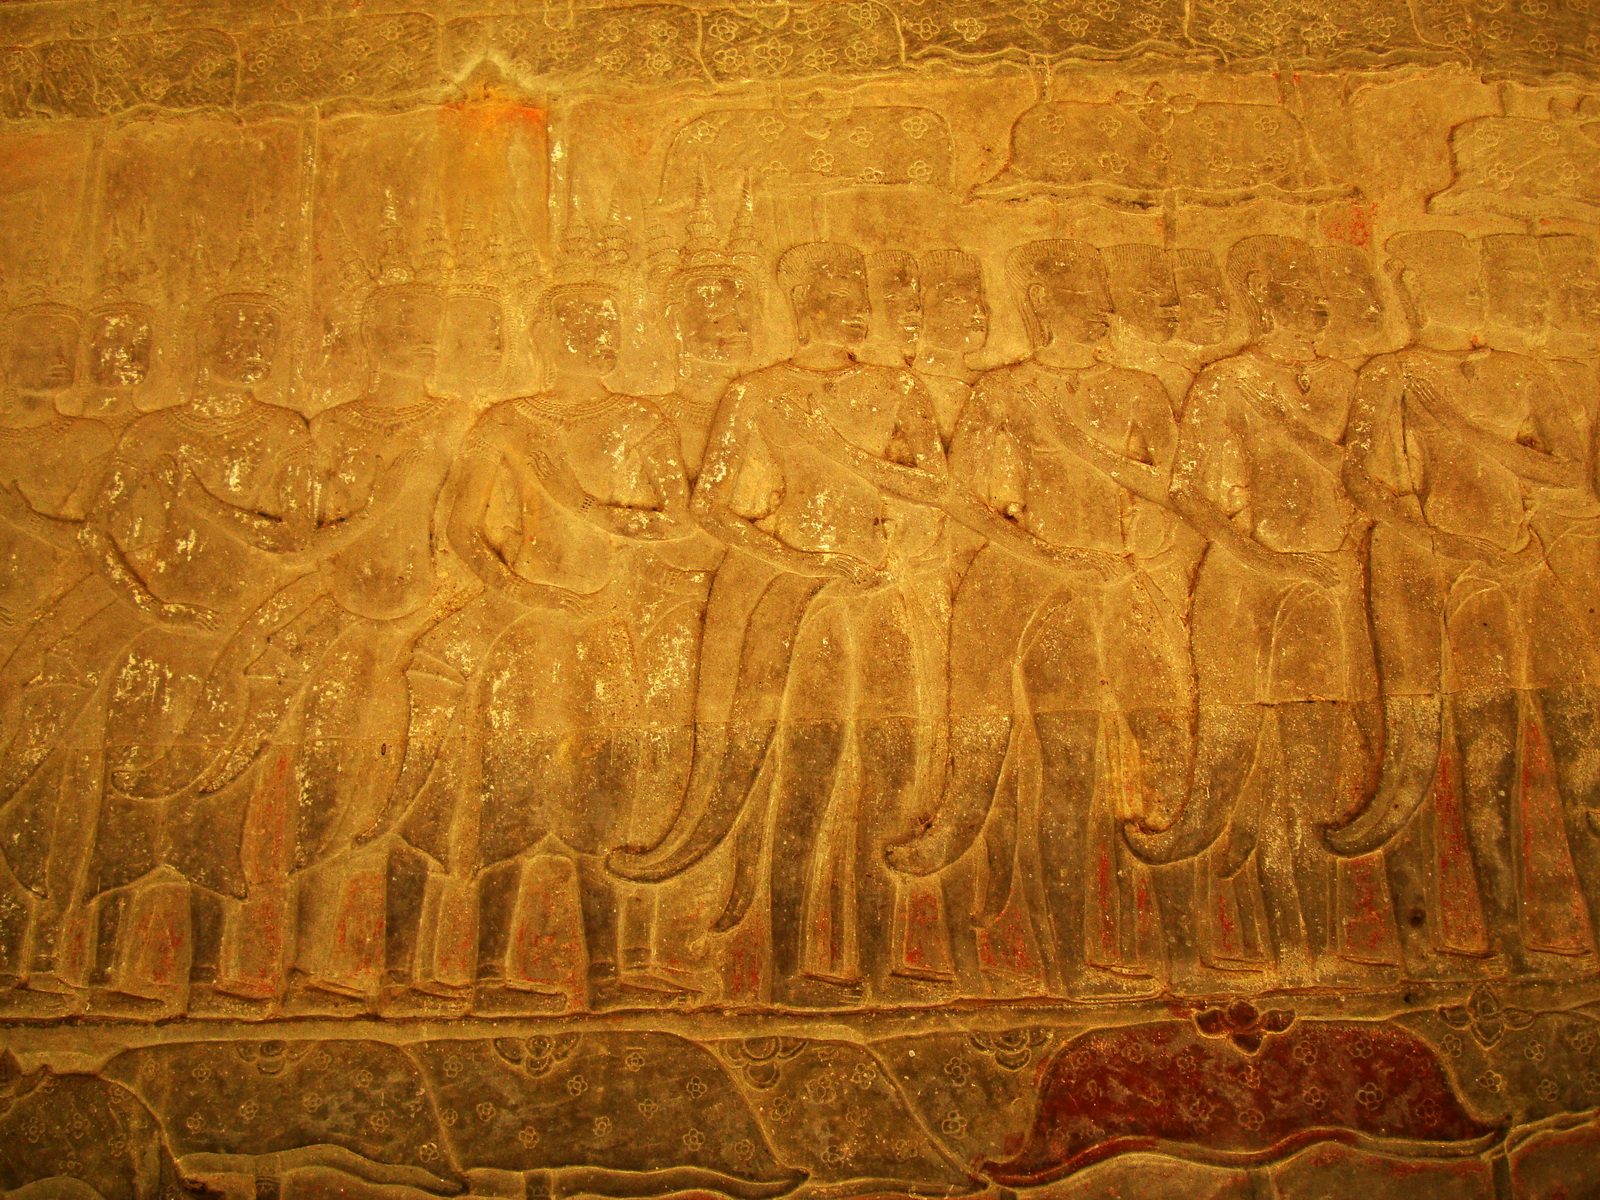 Angkor Wat Bas relief S Gallery E Wing Heavens and Hells 38